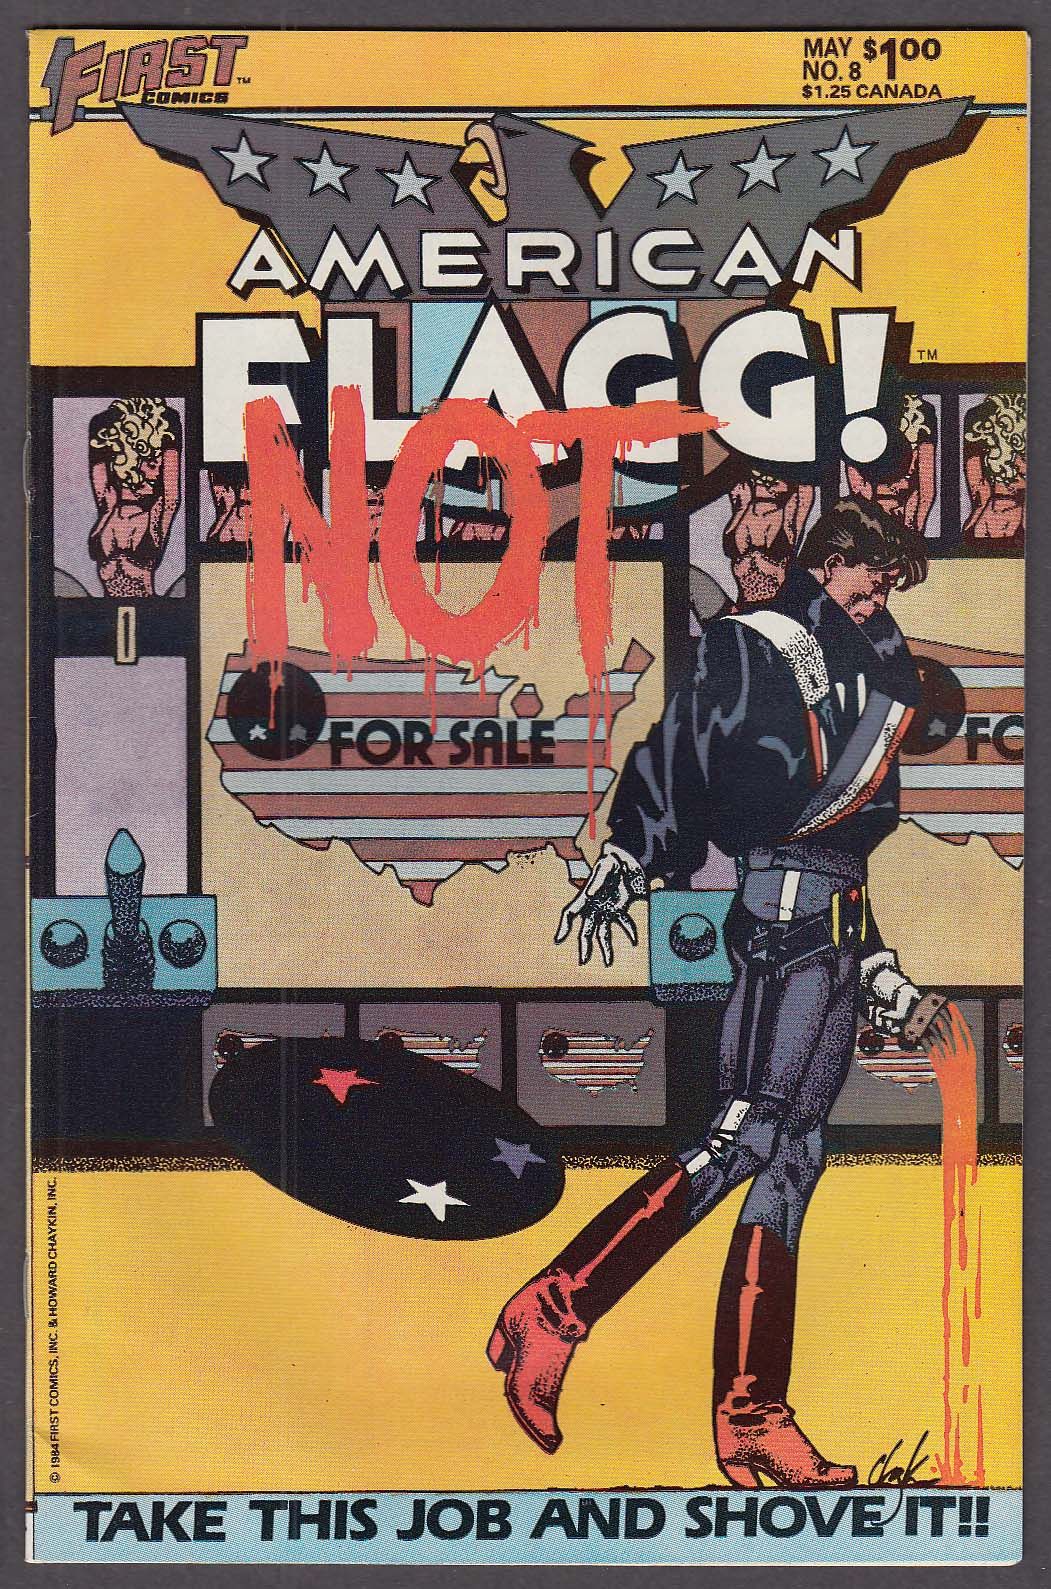 AMERICAN FLAGG! #8 First comic book 5 1984